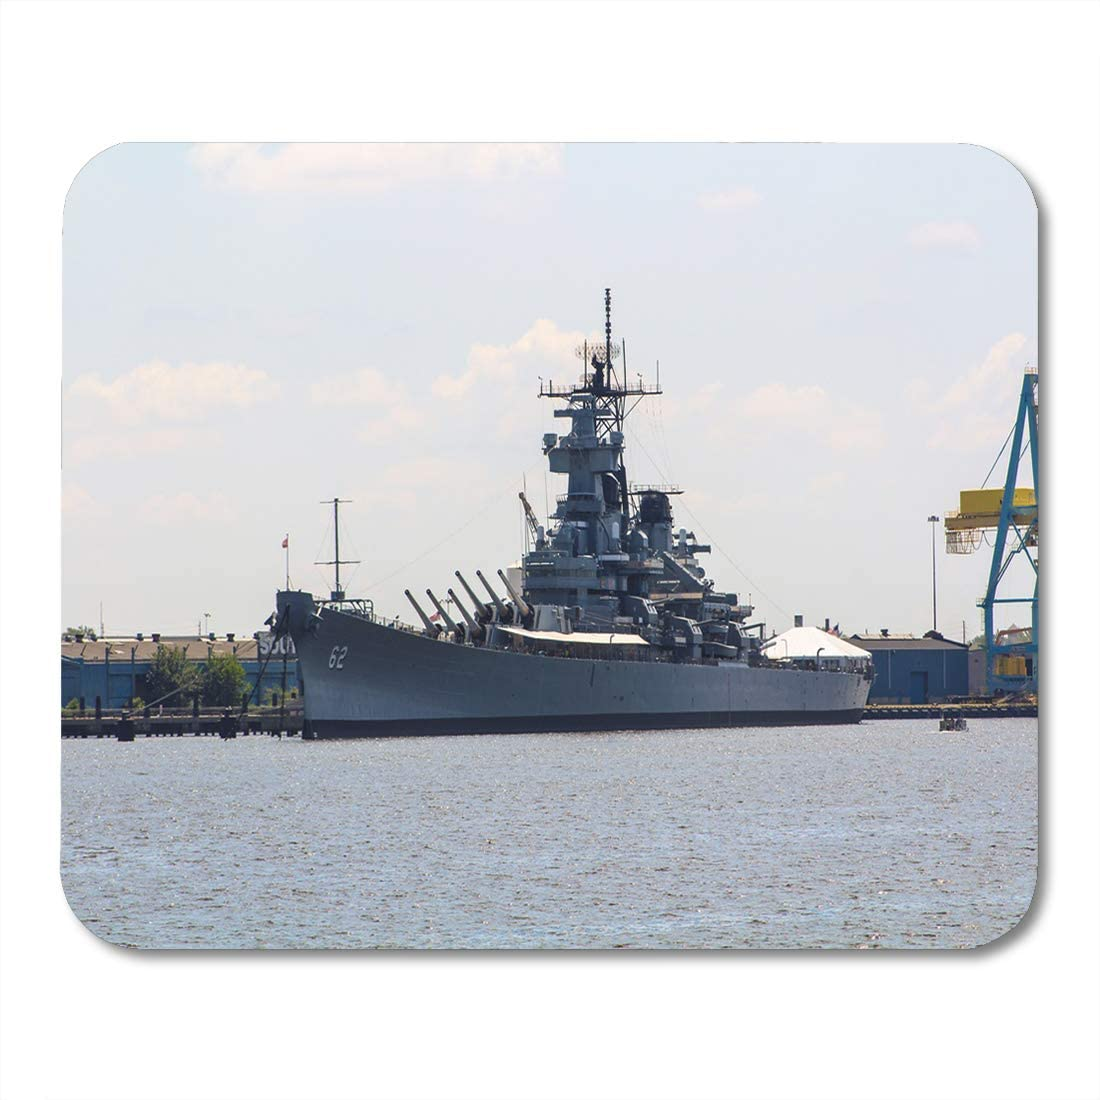 """Emvency Mouse Pads Pennsylvania Navy Warship in The Philadelphia Army Philly Mouse Pad for notebooks, Desktop Computers mats 9.5"""" x 7.9"""" Office Supplies"""